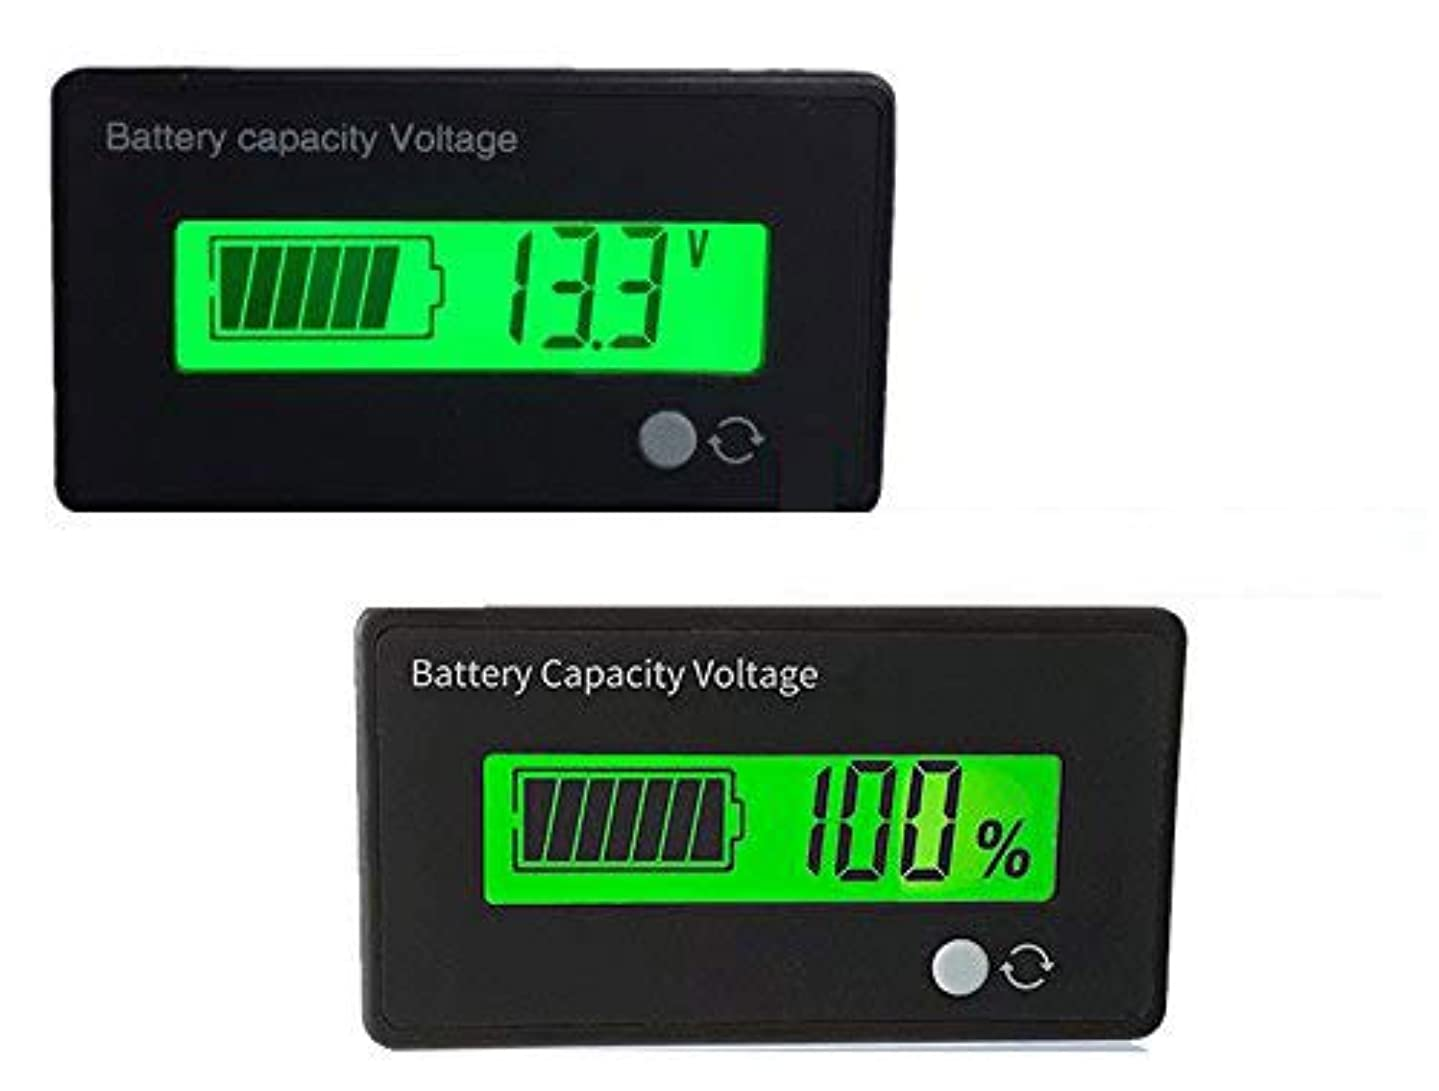 ABT Power Battery Fuel Gauge Indicator Meter for Electric Bike,Fork Lift,ATV,Quads,Golf Cart (10S 42V Lithium Battery Fuel Gauge)